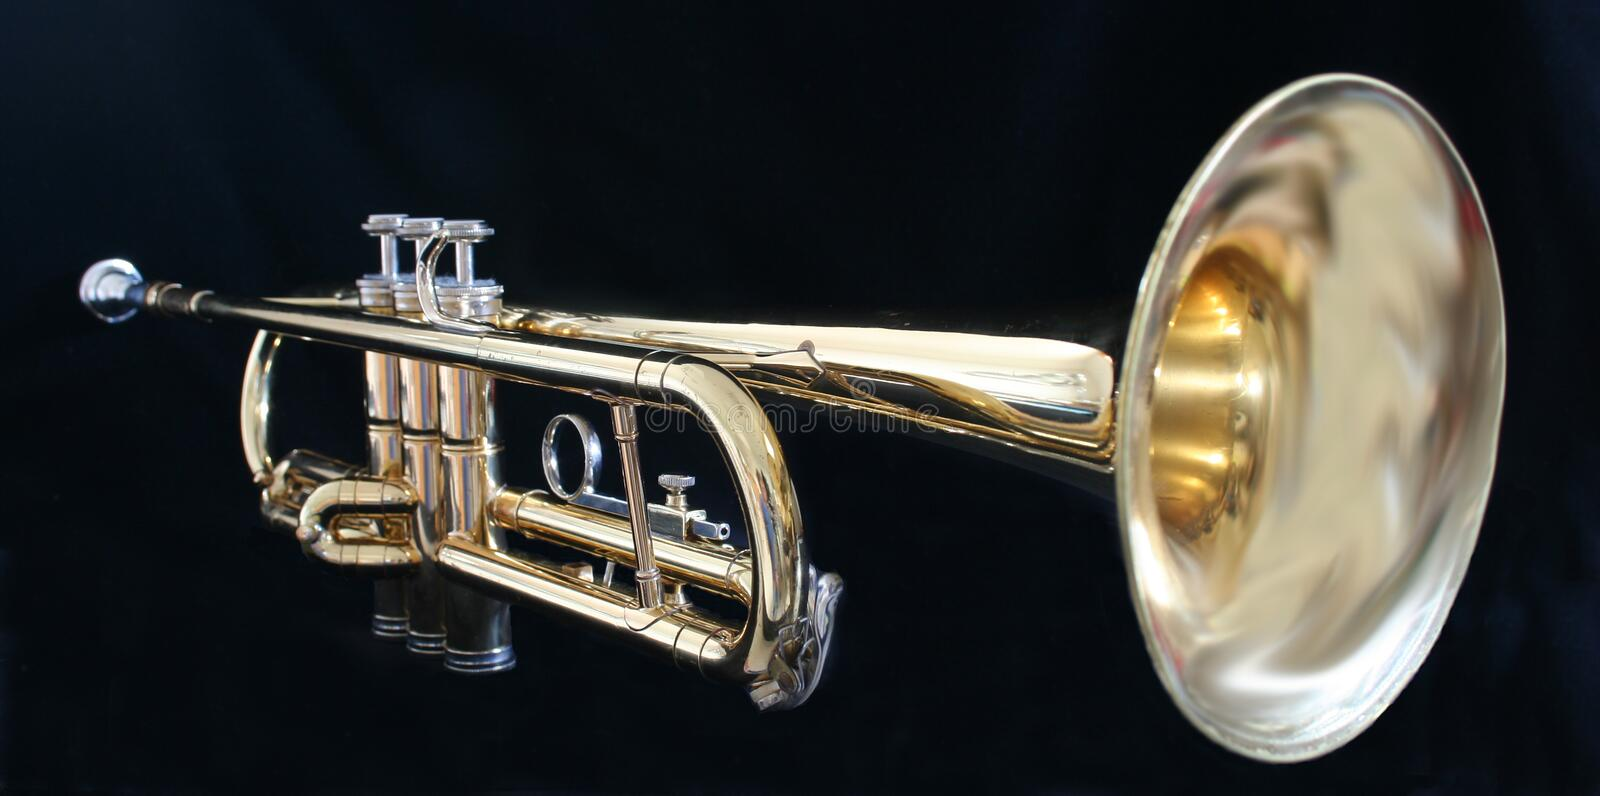 Download Trumpet stock image. Image of keys, black, photograph - 3193113